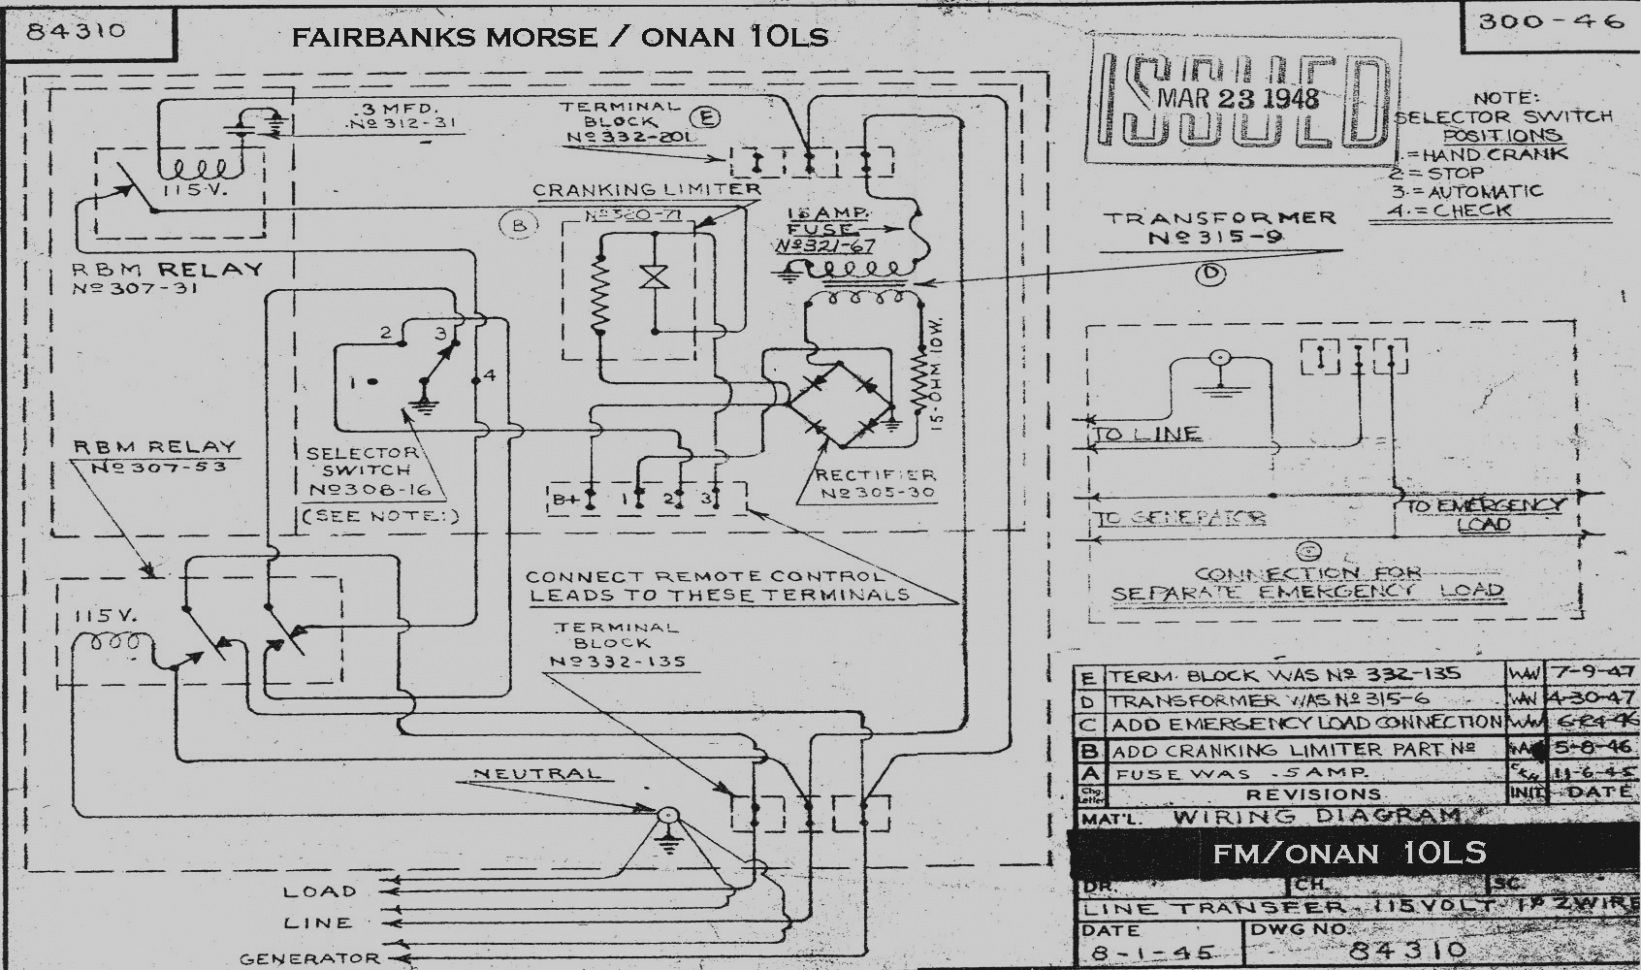 Old Onan Generators Wiring Diagrams - Wiring Diagram Expert Old Ac Generator Wiring Diagram on self powered generator diagram, ac motor generator, generator wire diagram, ac generator voltage regulator, ac generator animation, electric generator diagram, automotive generator diagram, generator schematic diagram, ac generator exploded view, generator exciter diagram, generator connection diagram, ac installation diagram, simple generator diagram, ac generator design, ac plug diagram, ac generator head, diesel generator diagram, power generator diagram, ac schematic diagram, ford truck alternator diagram,